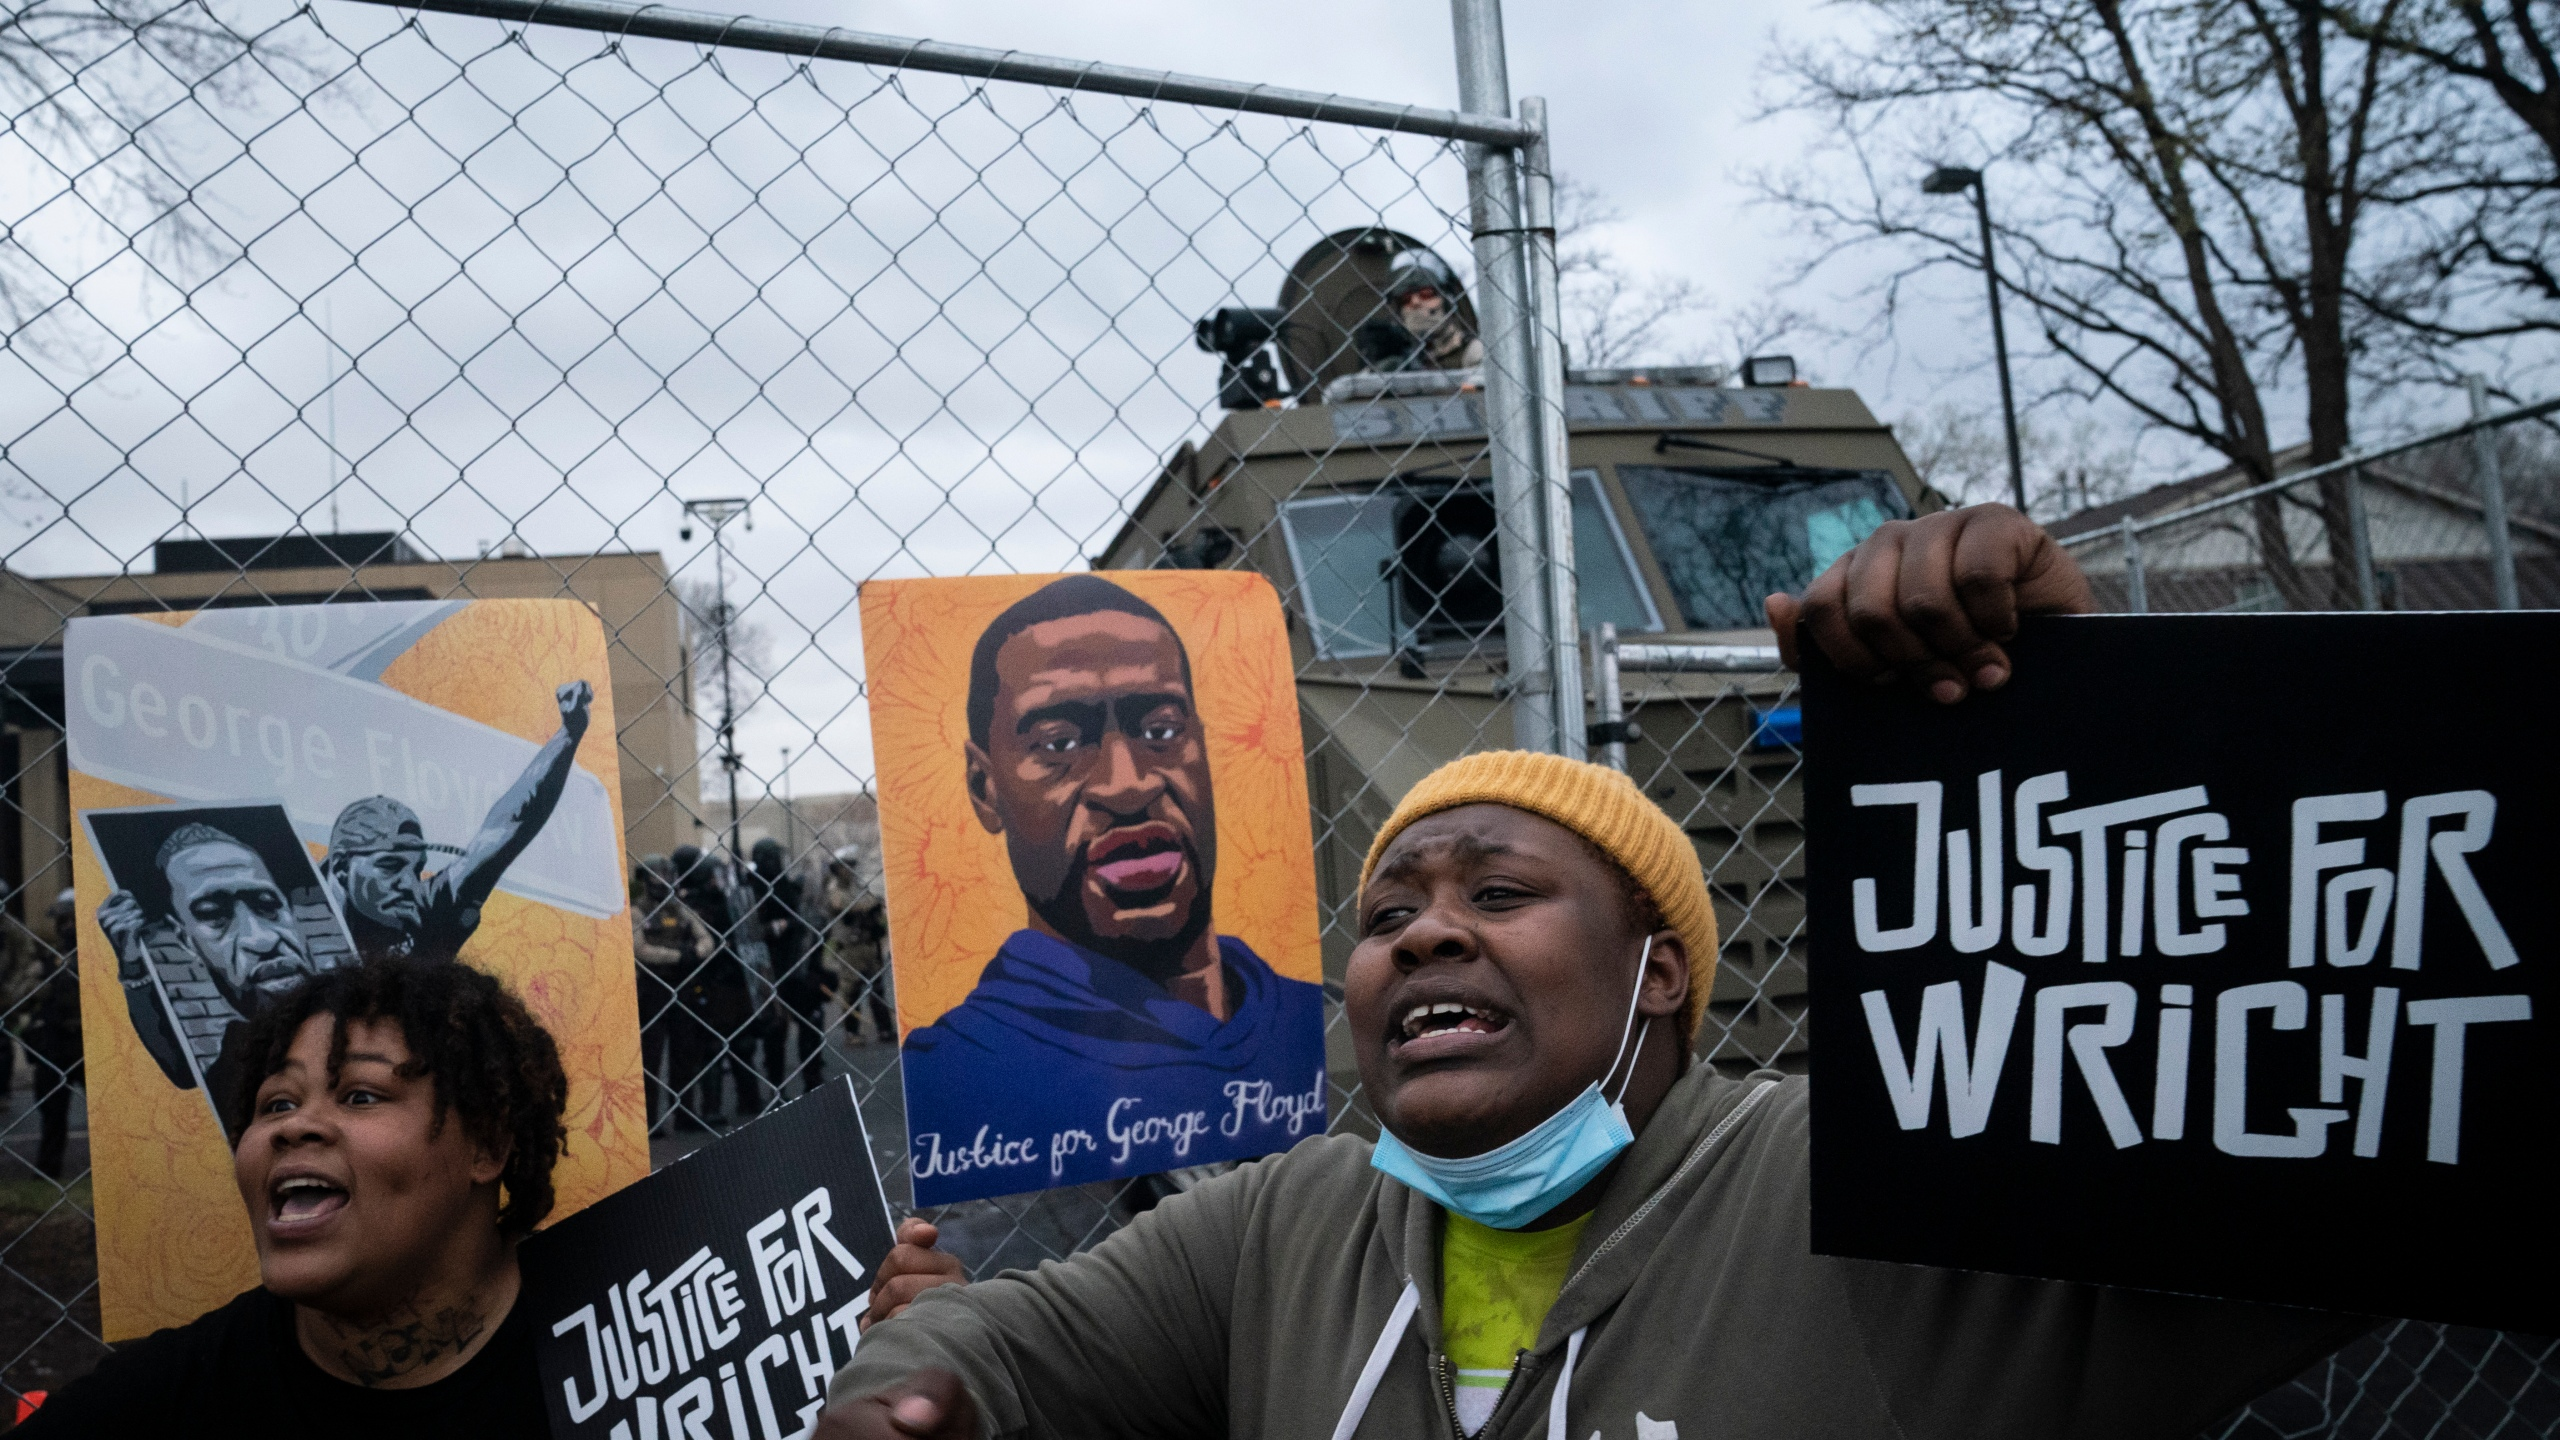 Demonstrators shout along a perimeter fence guarded by law enforcement officers during a protest over Sunday's fatal shooting of Daunte Wright during a traffic stop, outside the Brooklyn Center Police Department, Wednesday, April 14, 2021, in Brooklyn Center, Minn. (AP Photo/John Minchillo)